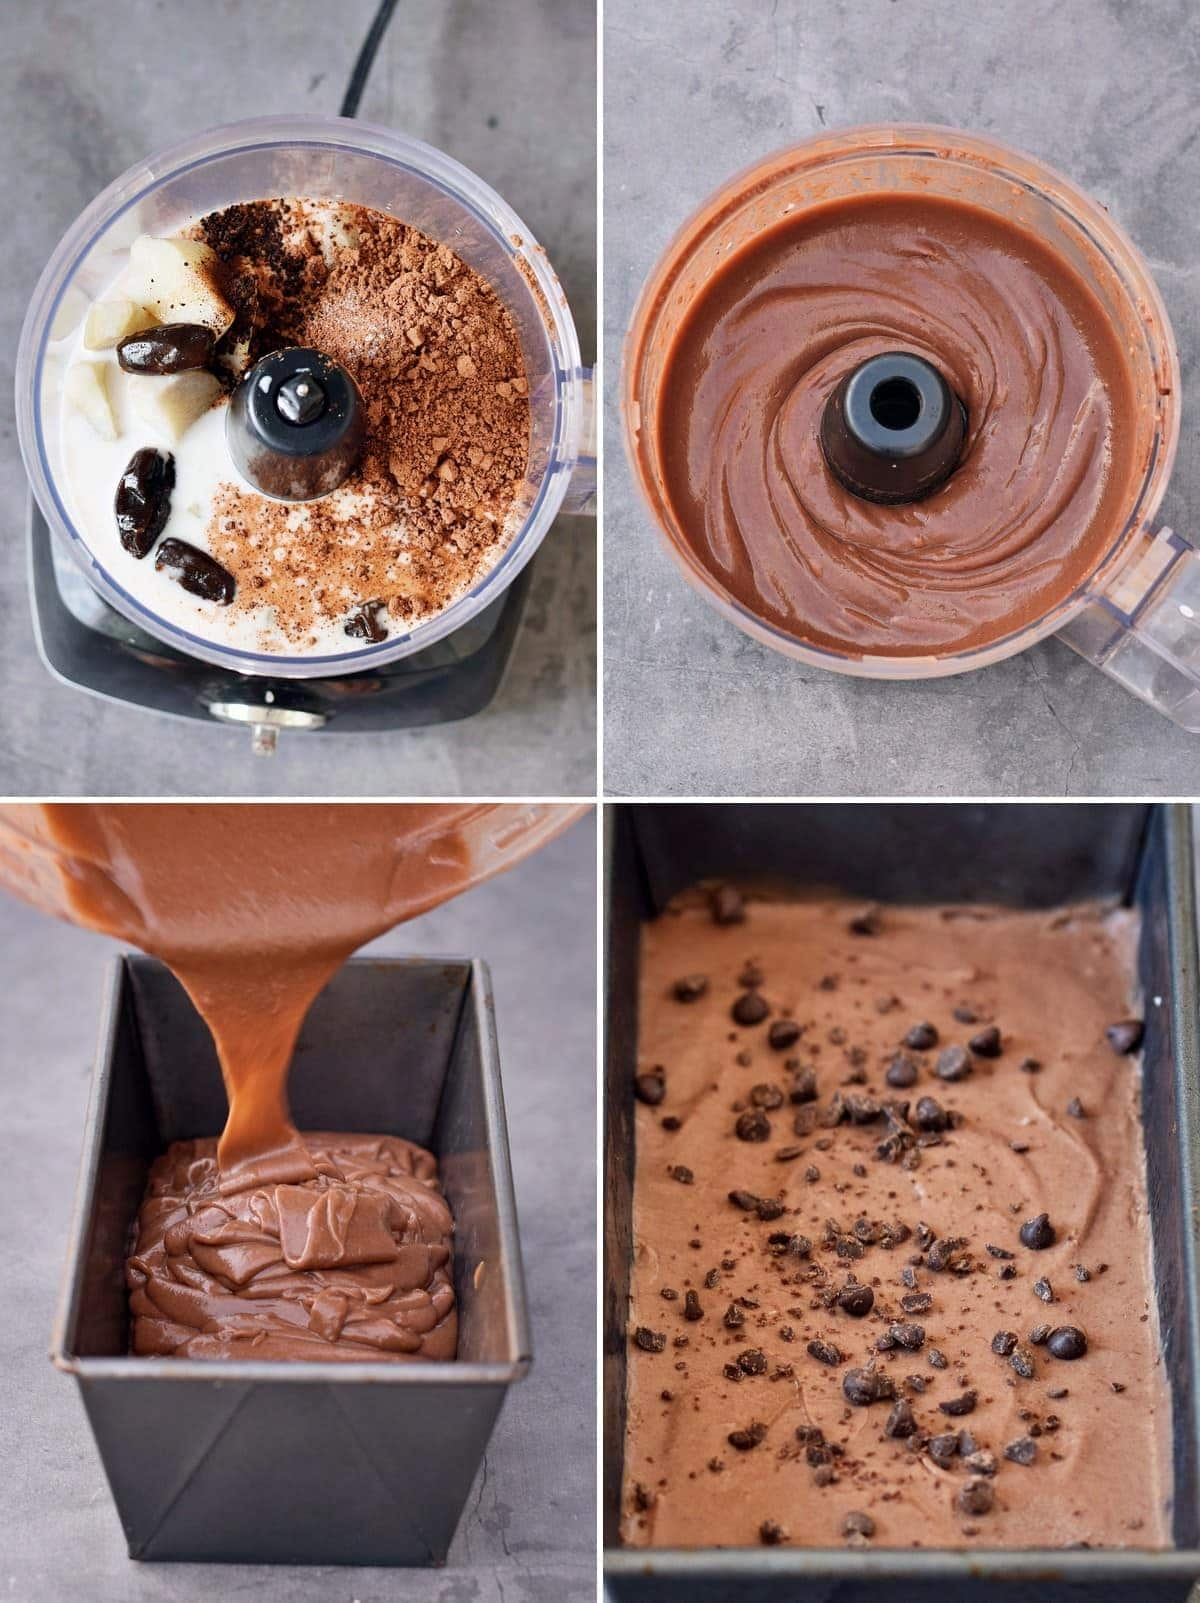 4 step by step photos showing how to make vegan chocolate ice cream